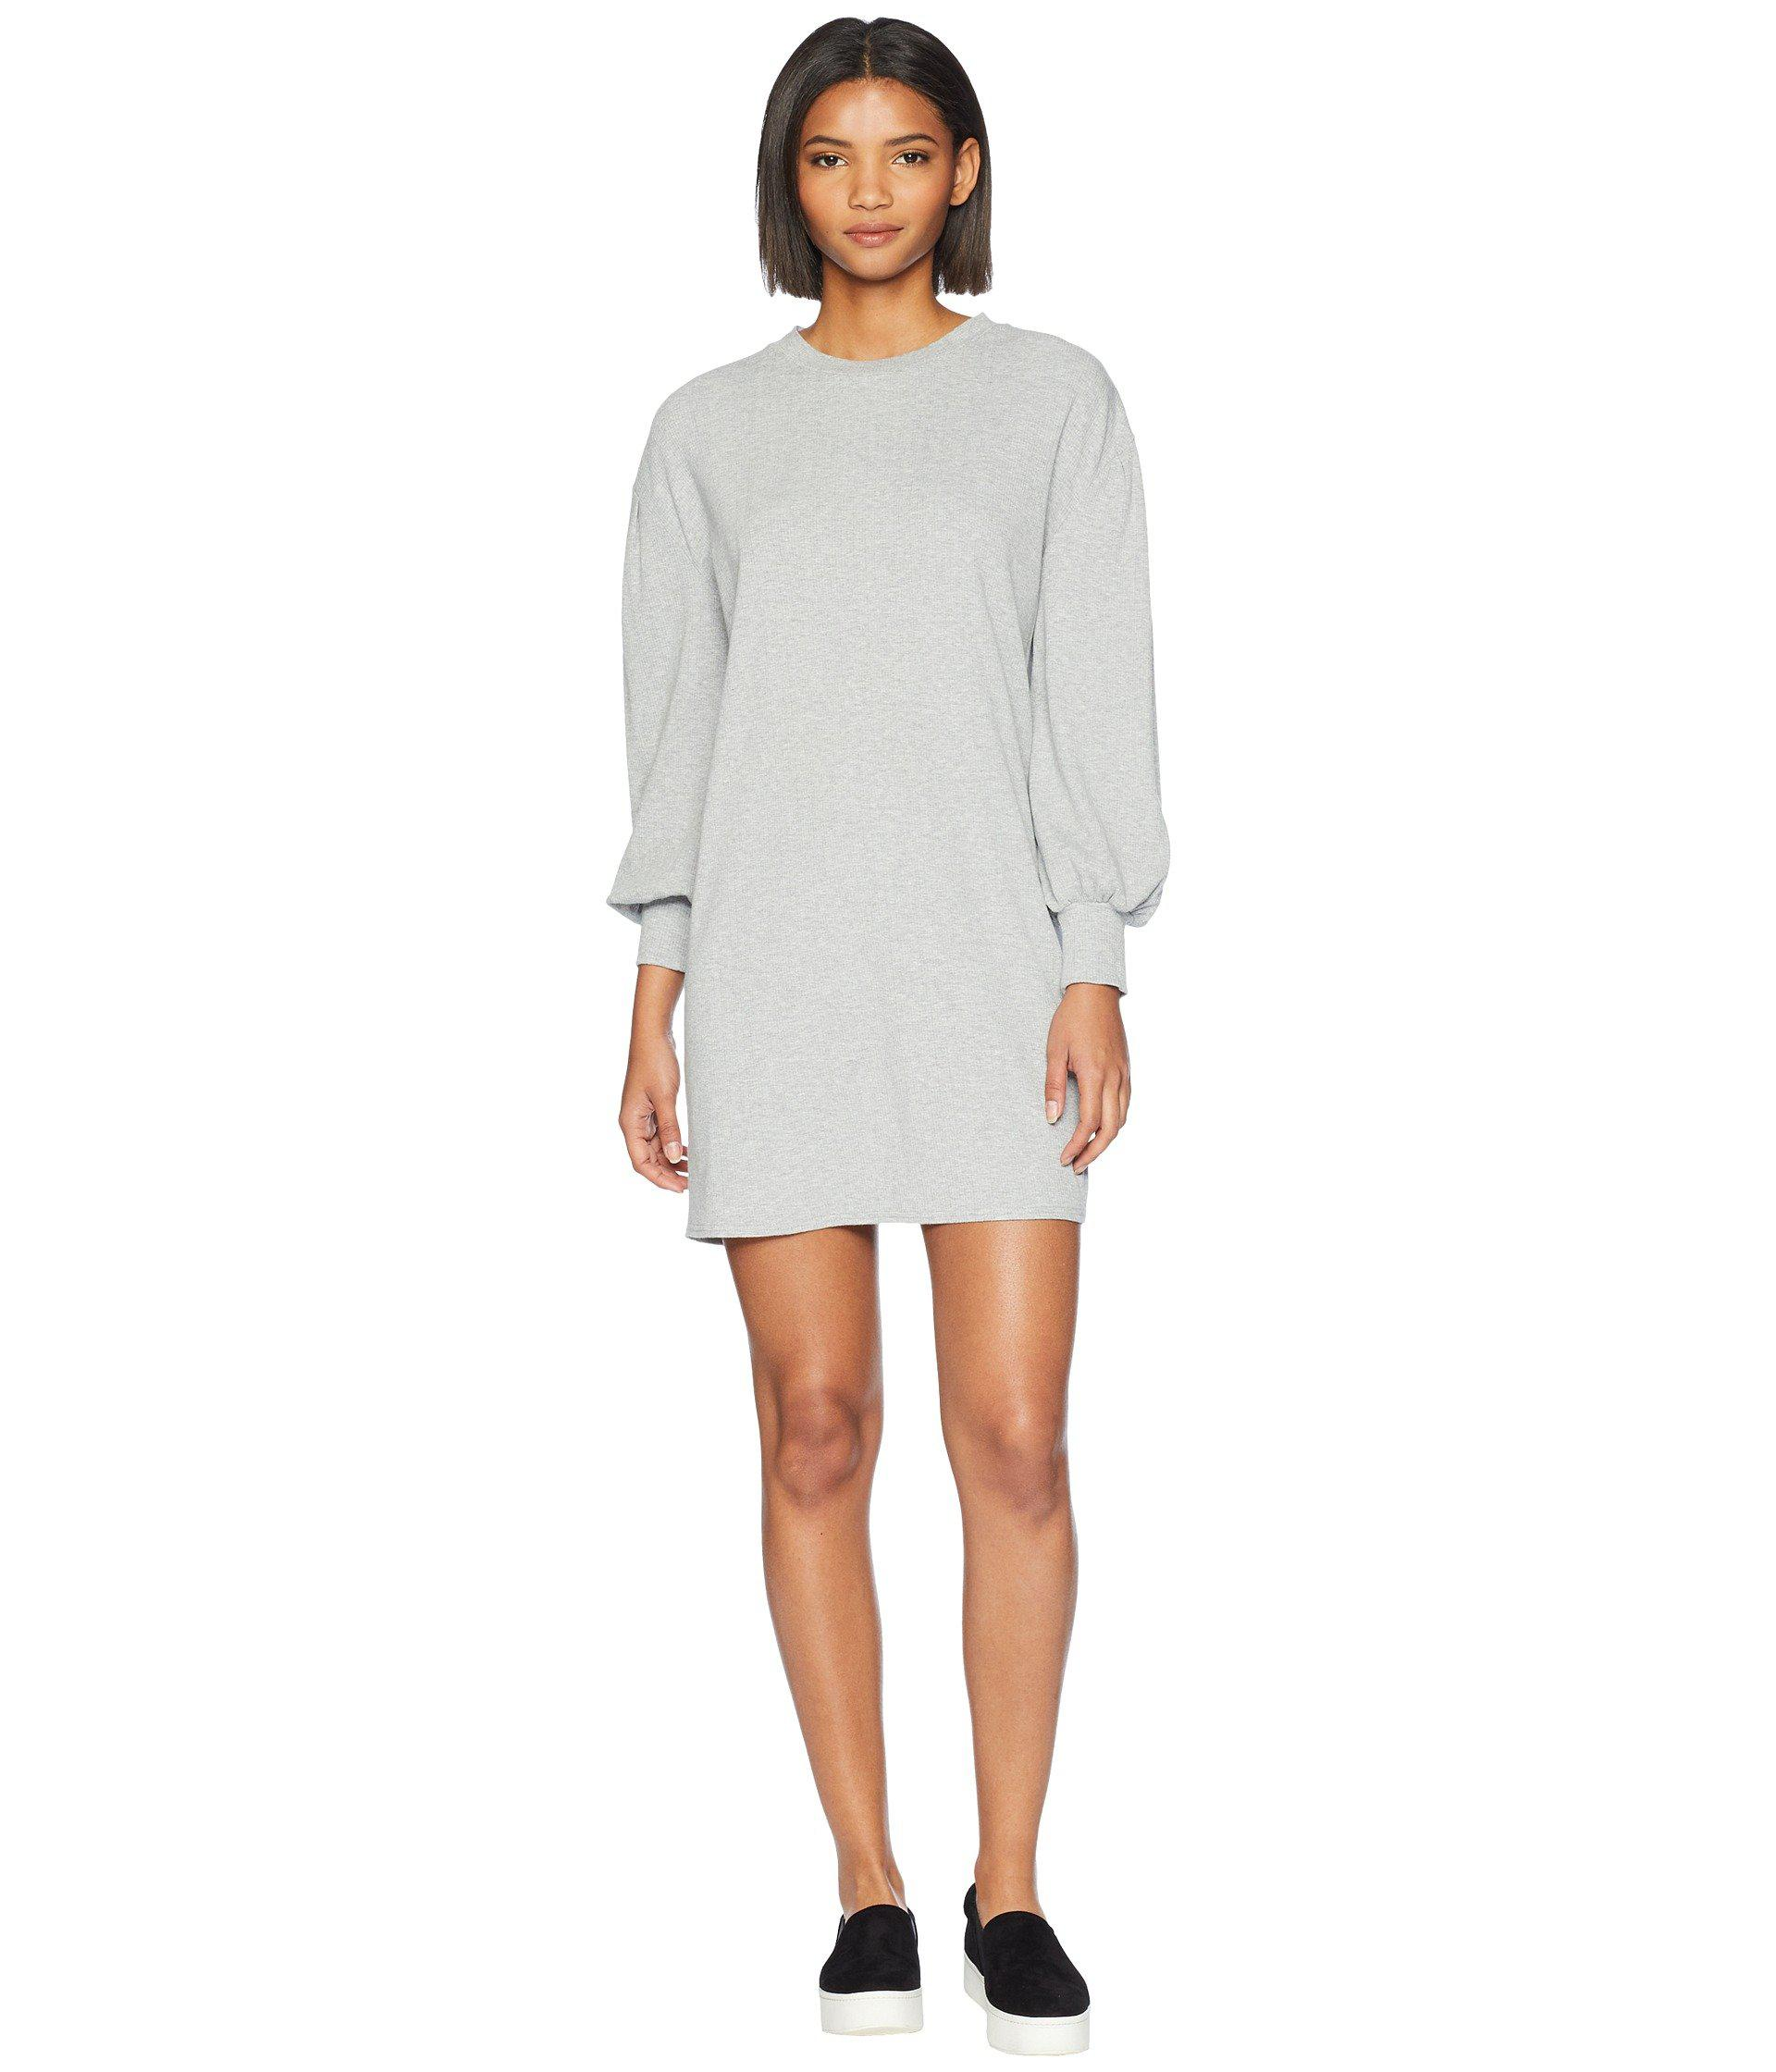 f029169c100 Volcom Lil 3 4 Sleeve Crew Neck Dress in Gray - Save 62% - Lyst